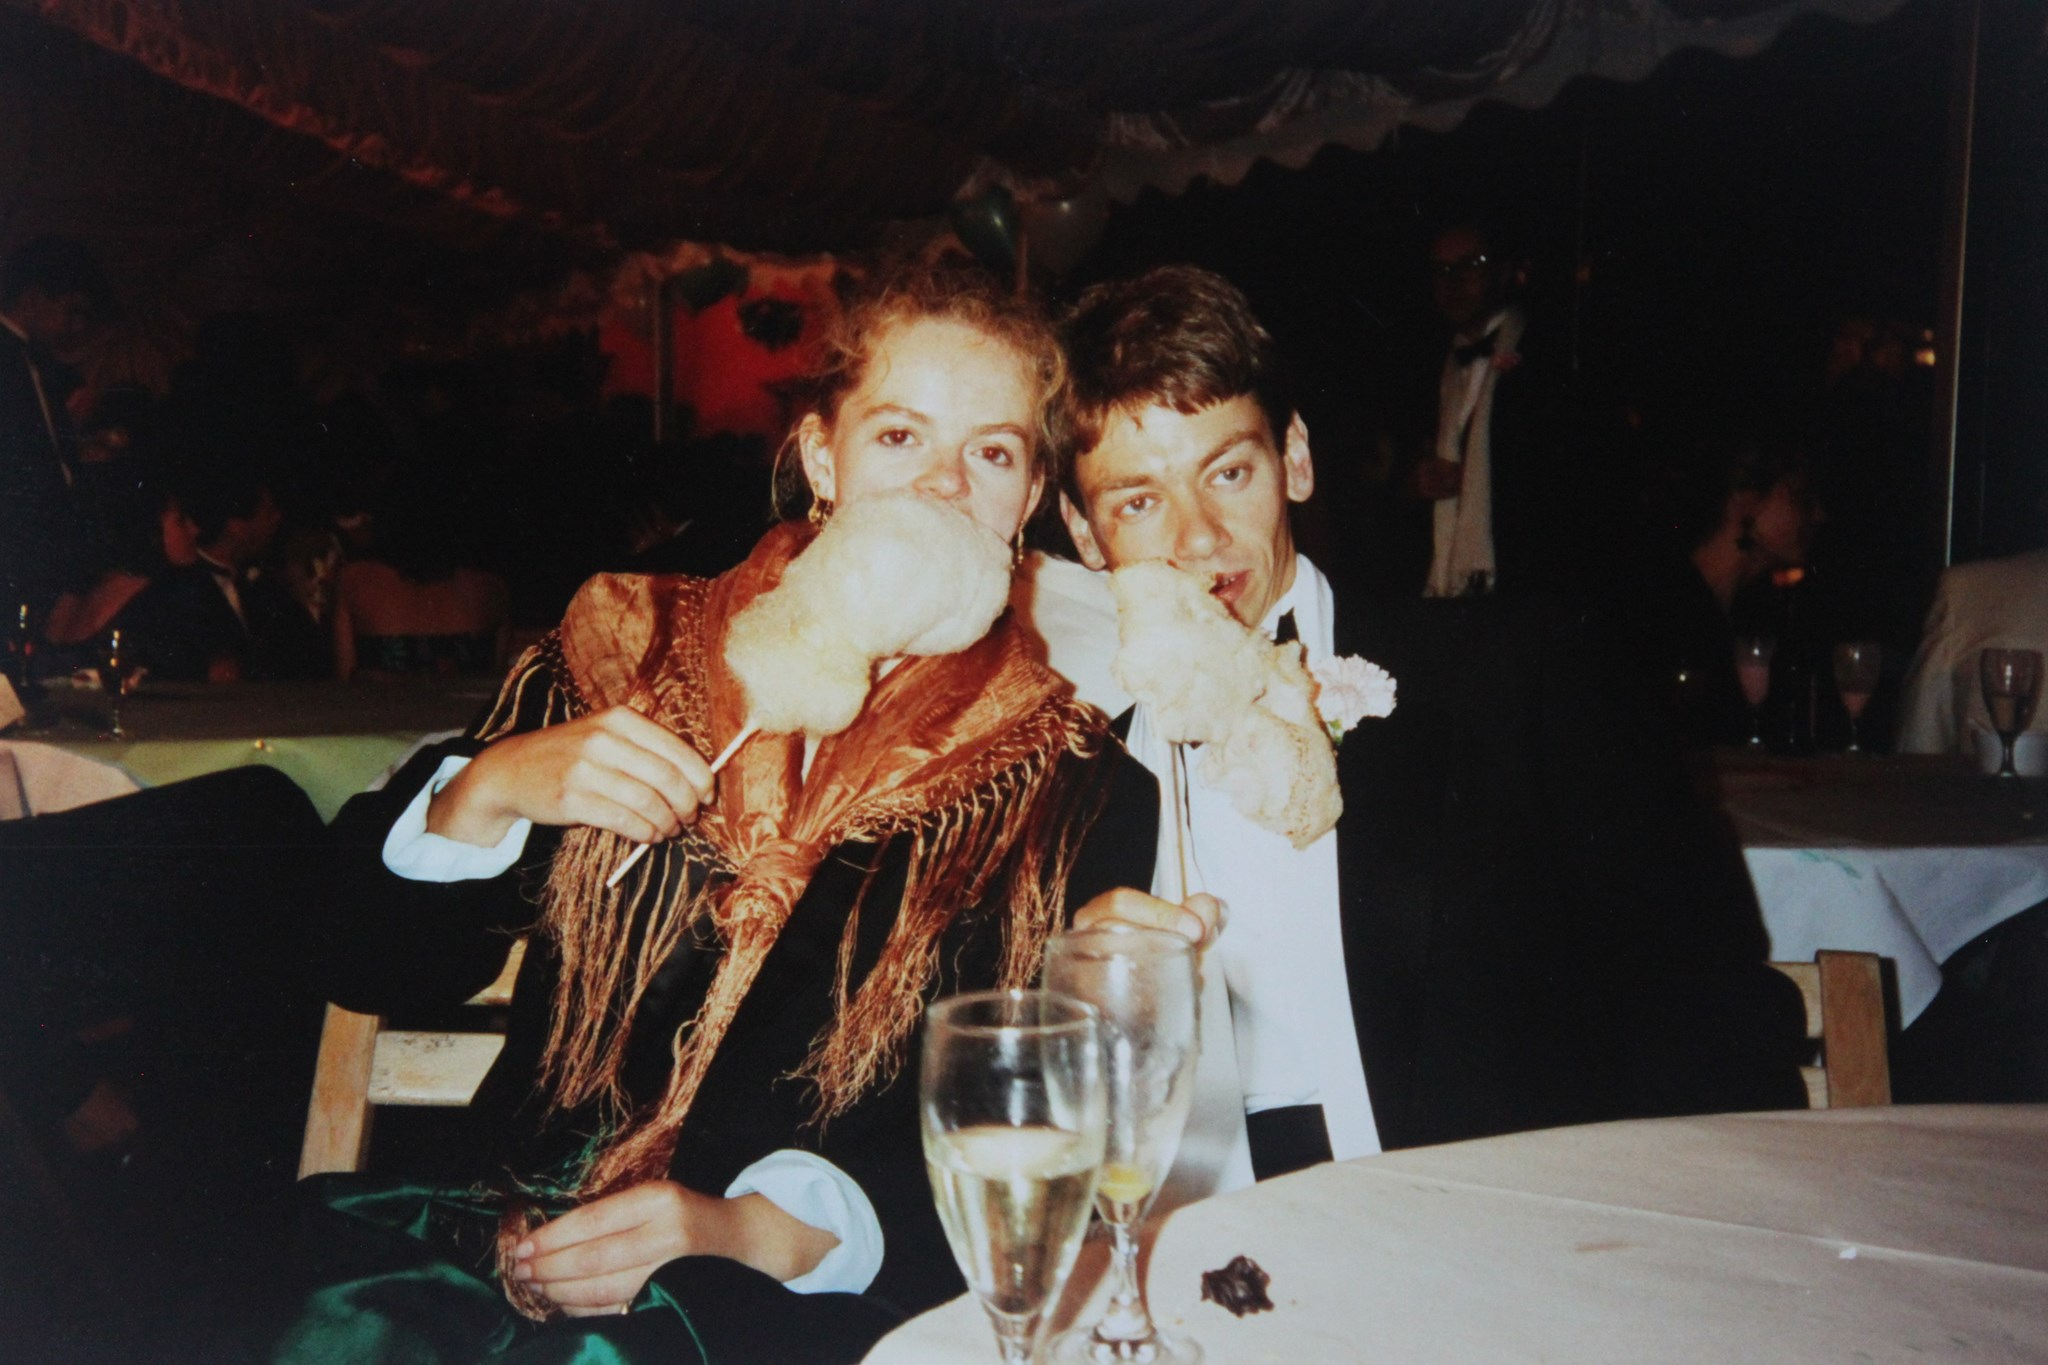 Eating candy floss with Mark at Clare May Ball